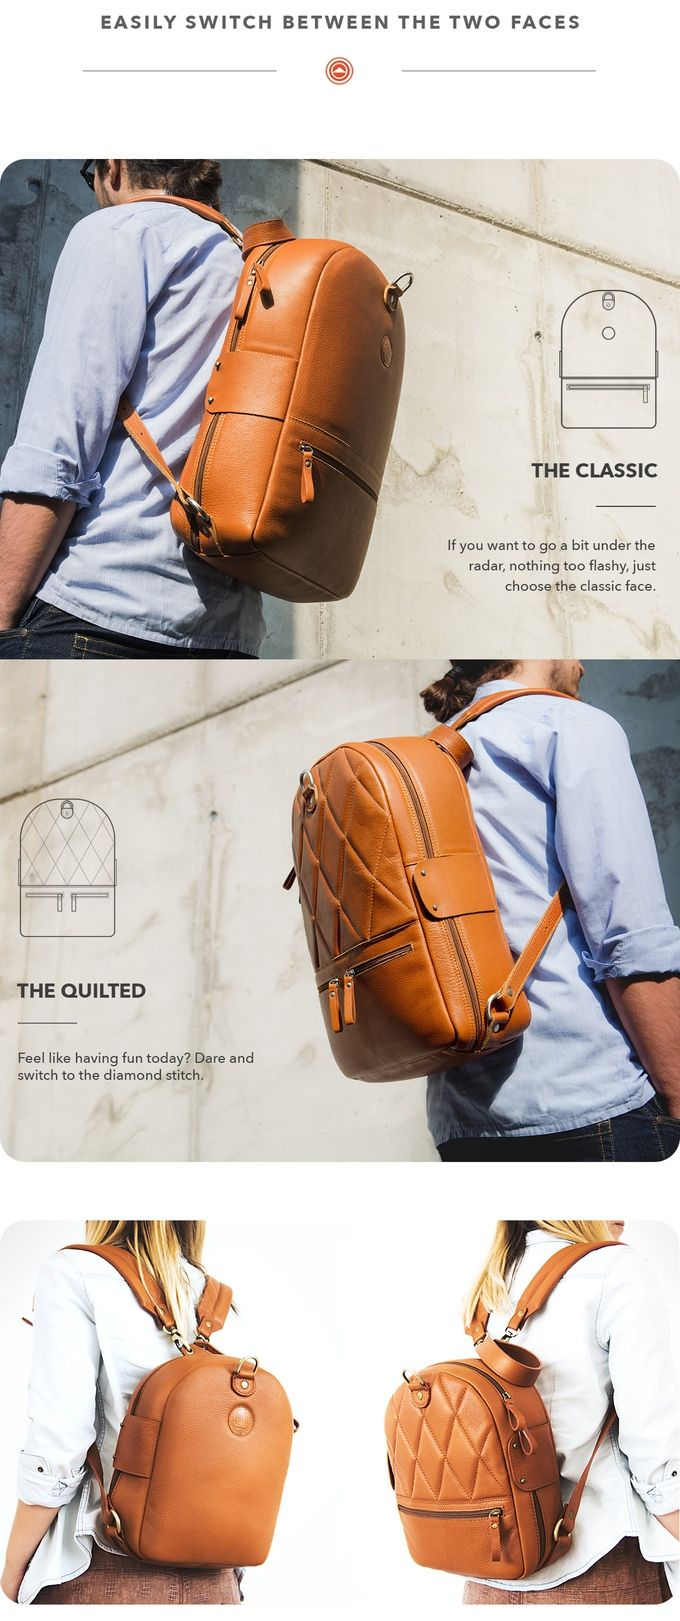 e962d6bb8a The most affordable luxury backpacks! With 2 faces and over 15 features